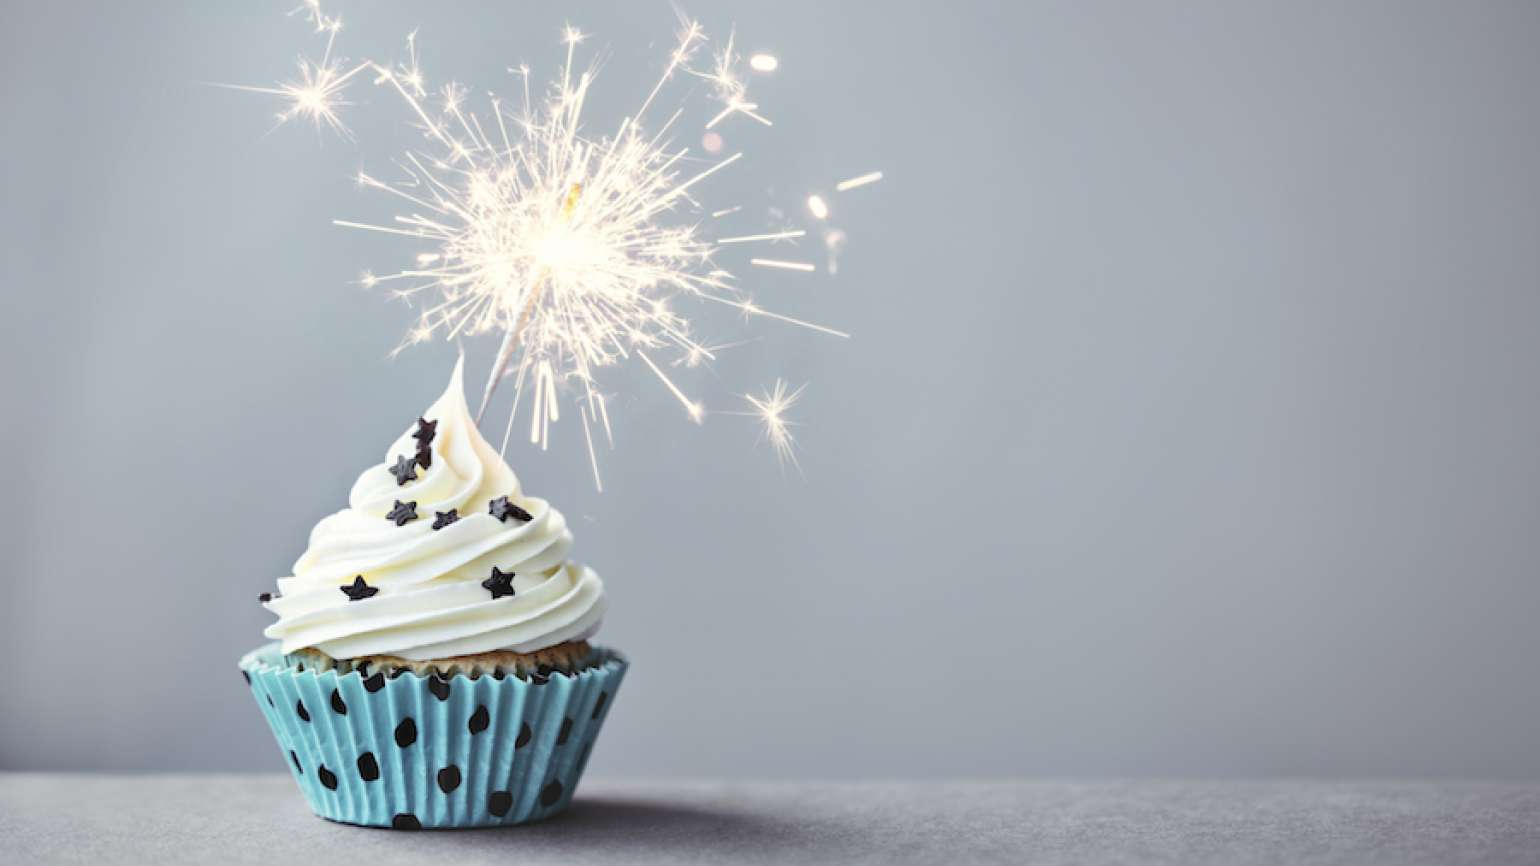 Happy Birthday to Lunch-Break Miracles! Photo by Ruth Black, Thinkstock.